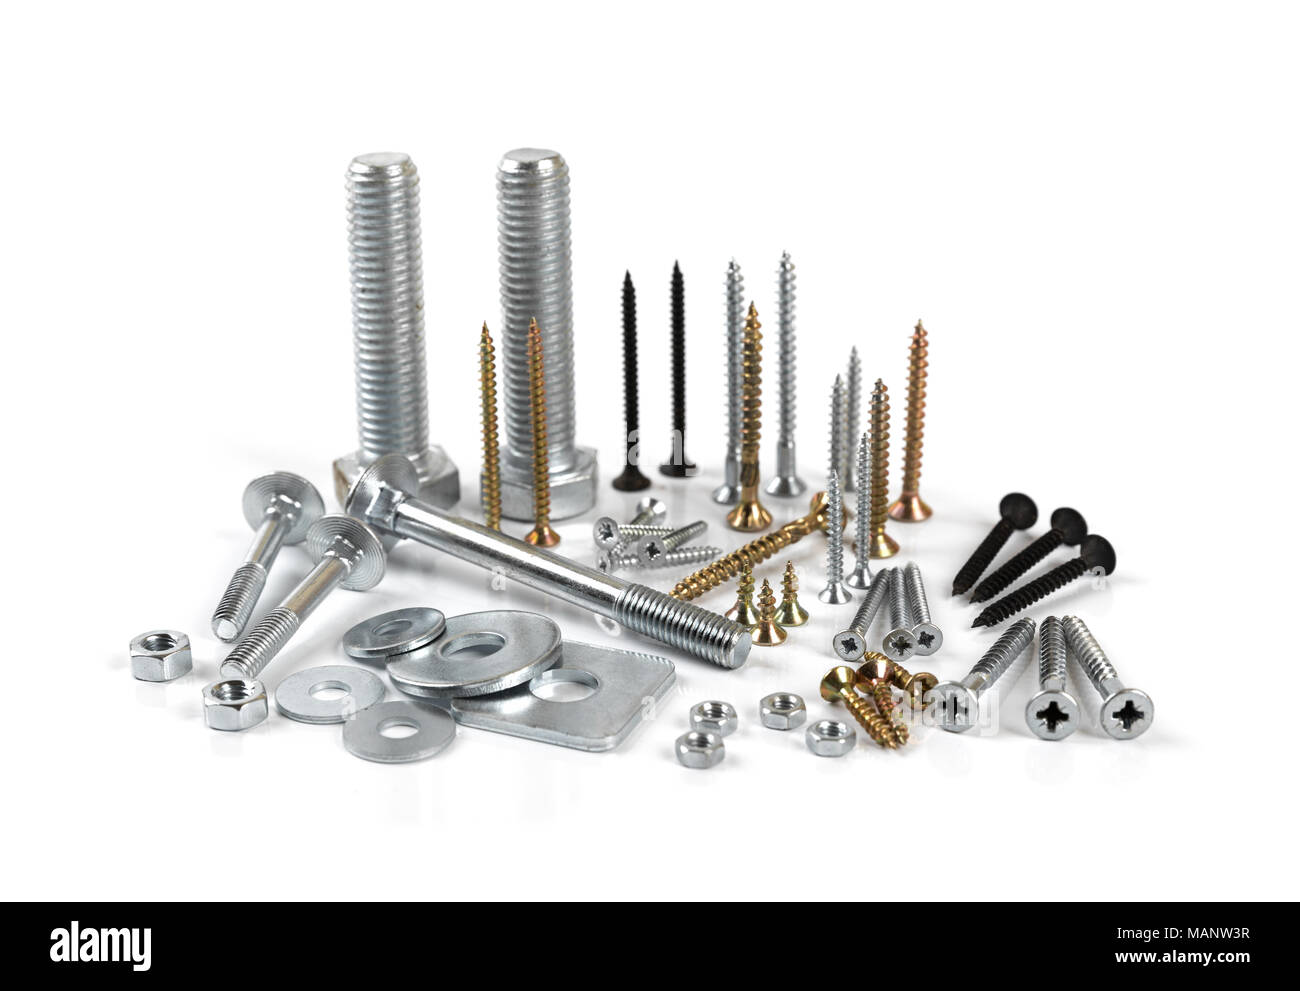 variety of screws and fasteners isolated on white background - Stock Image